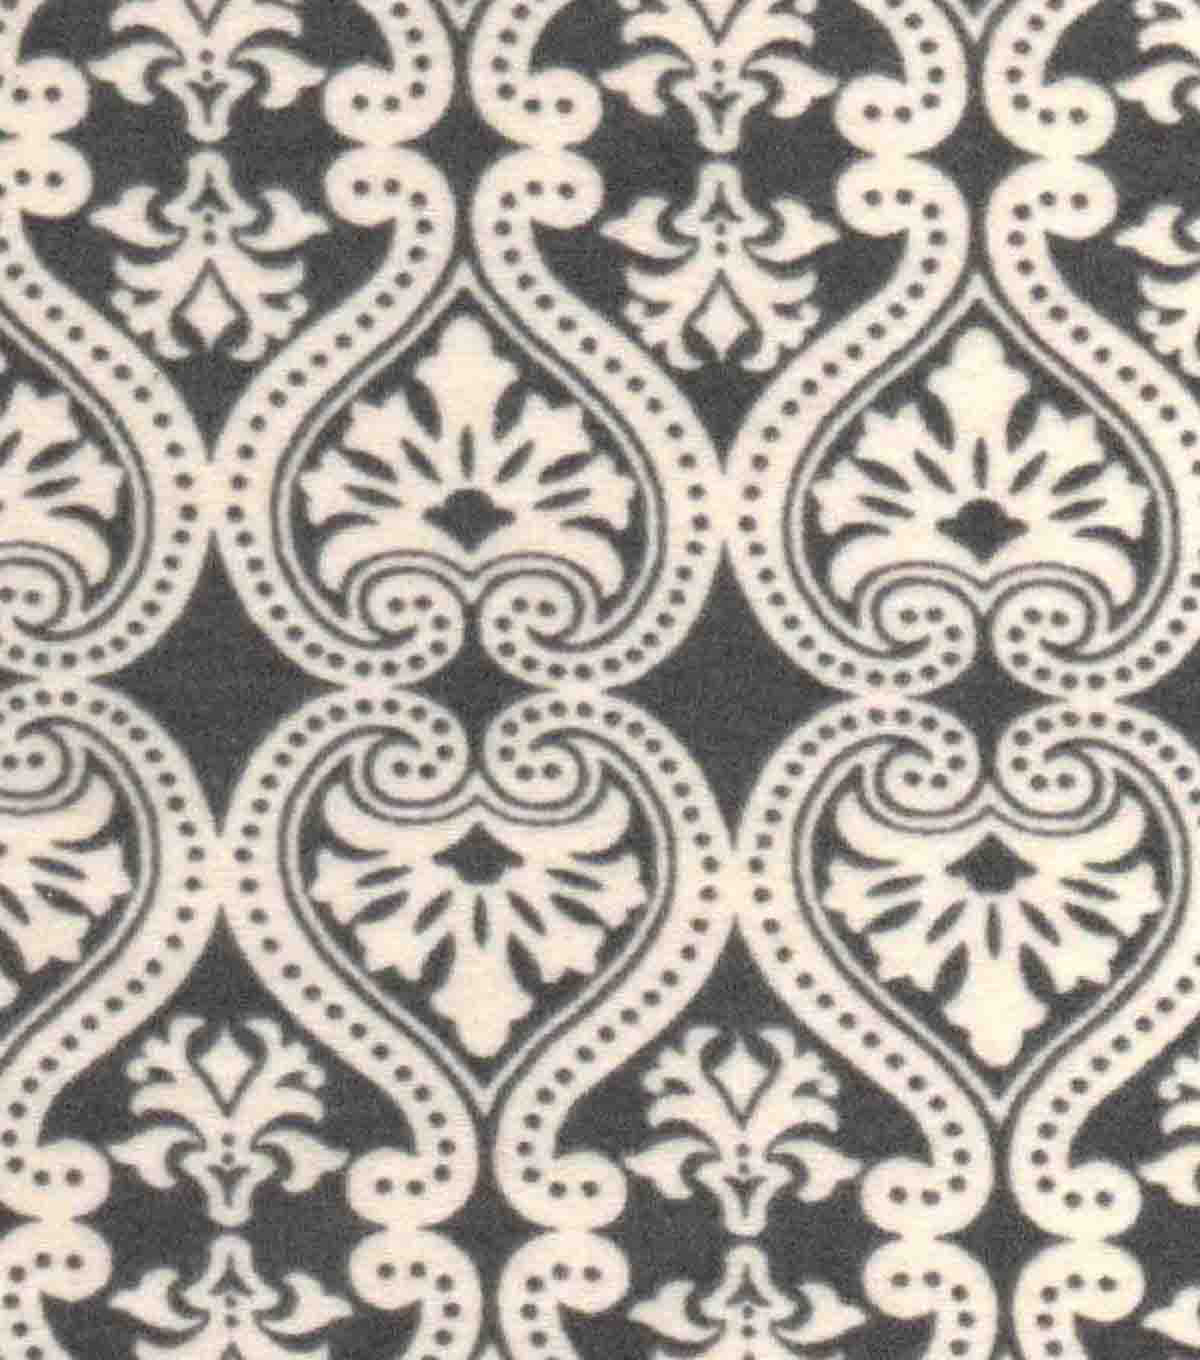 Snuggle Flannel Fabric -Damask Grey